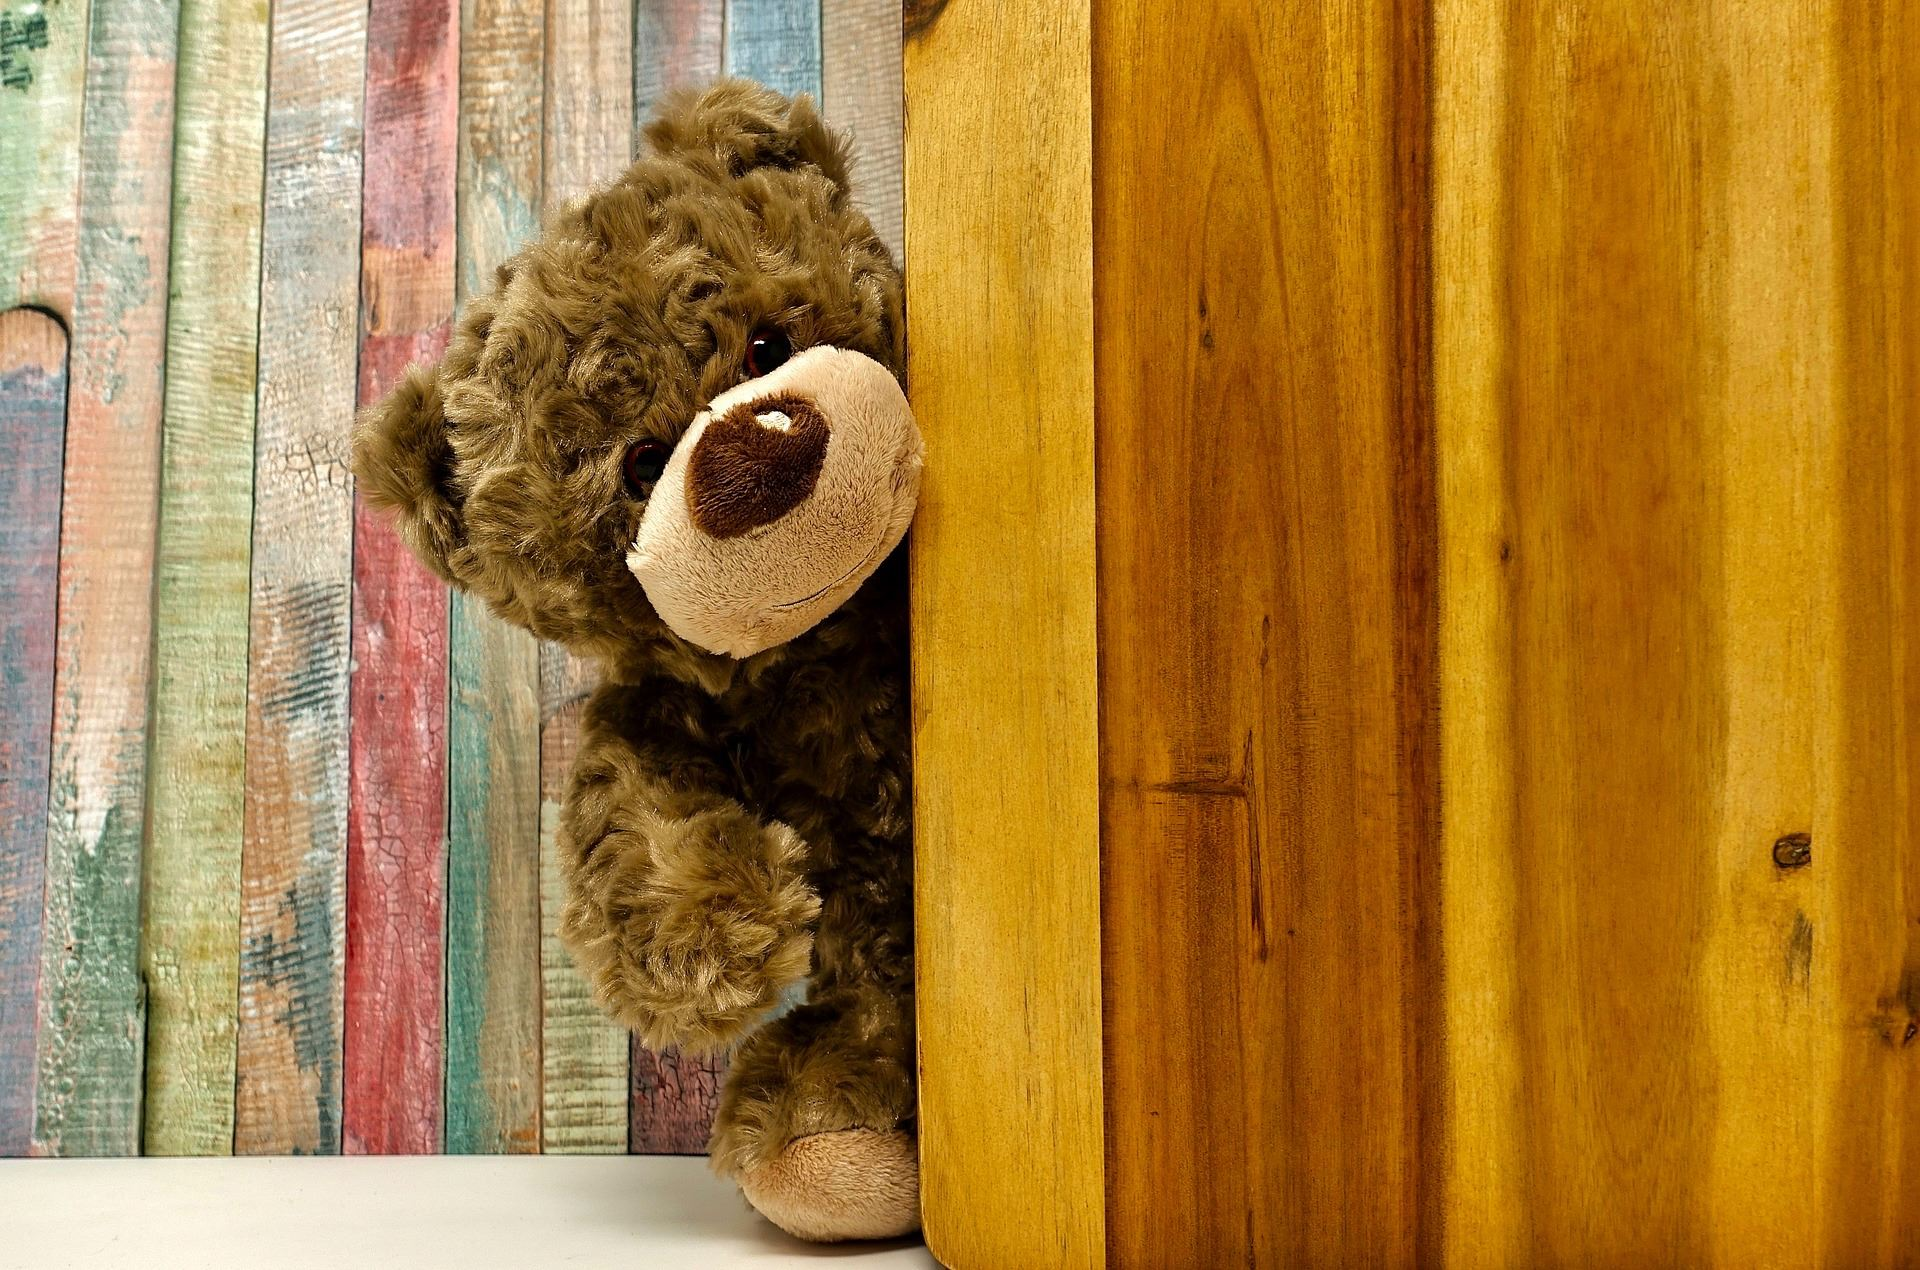 A stuffed teddy bear peeks out from behind a wall.